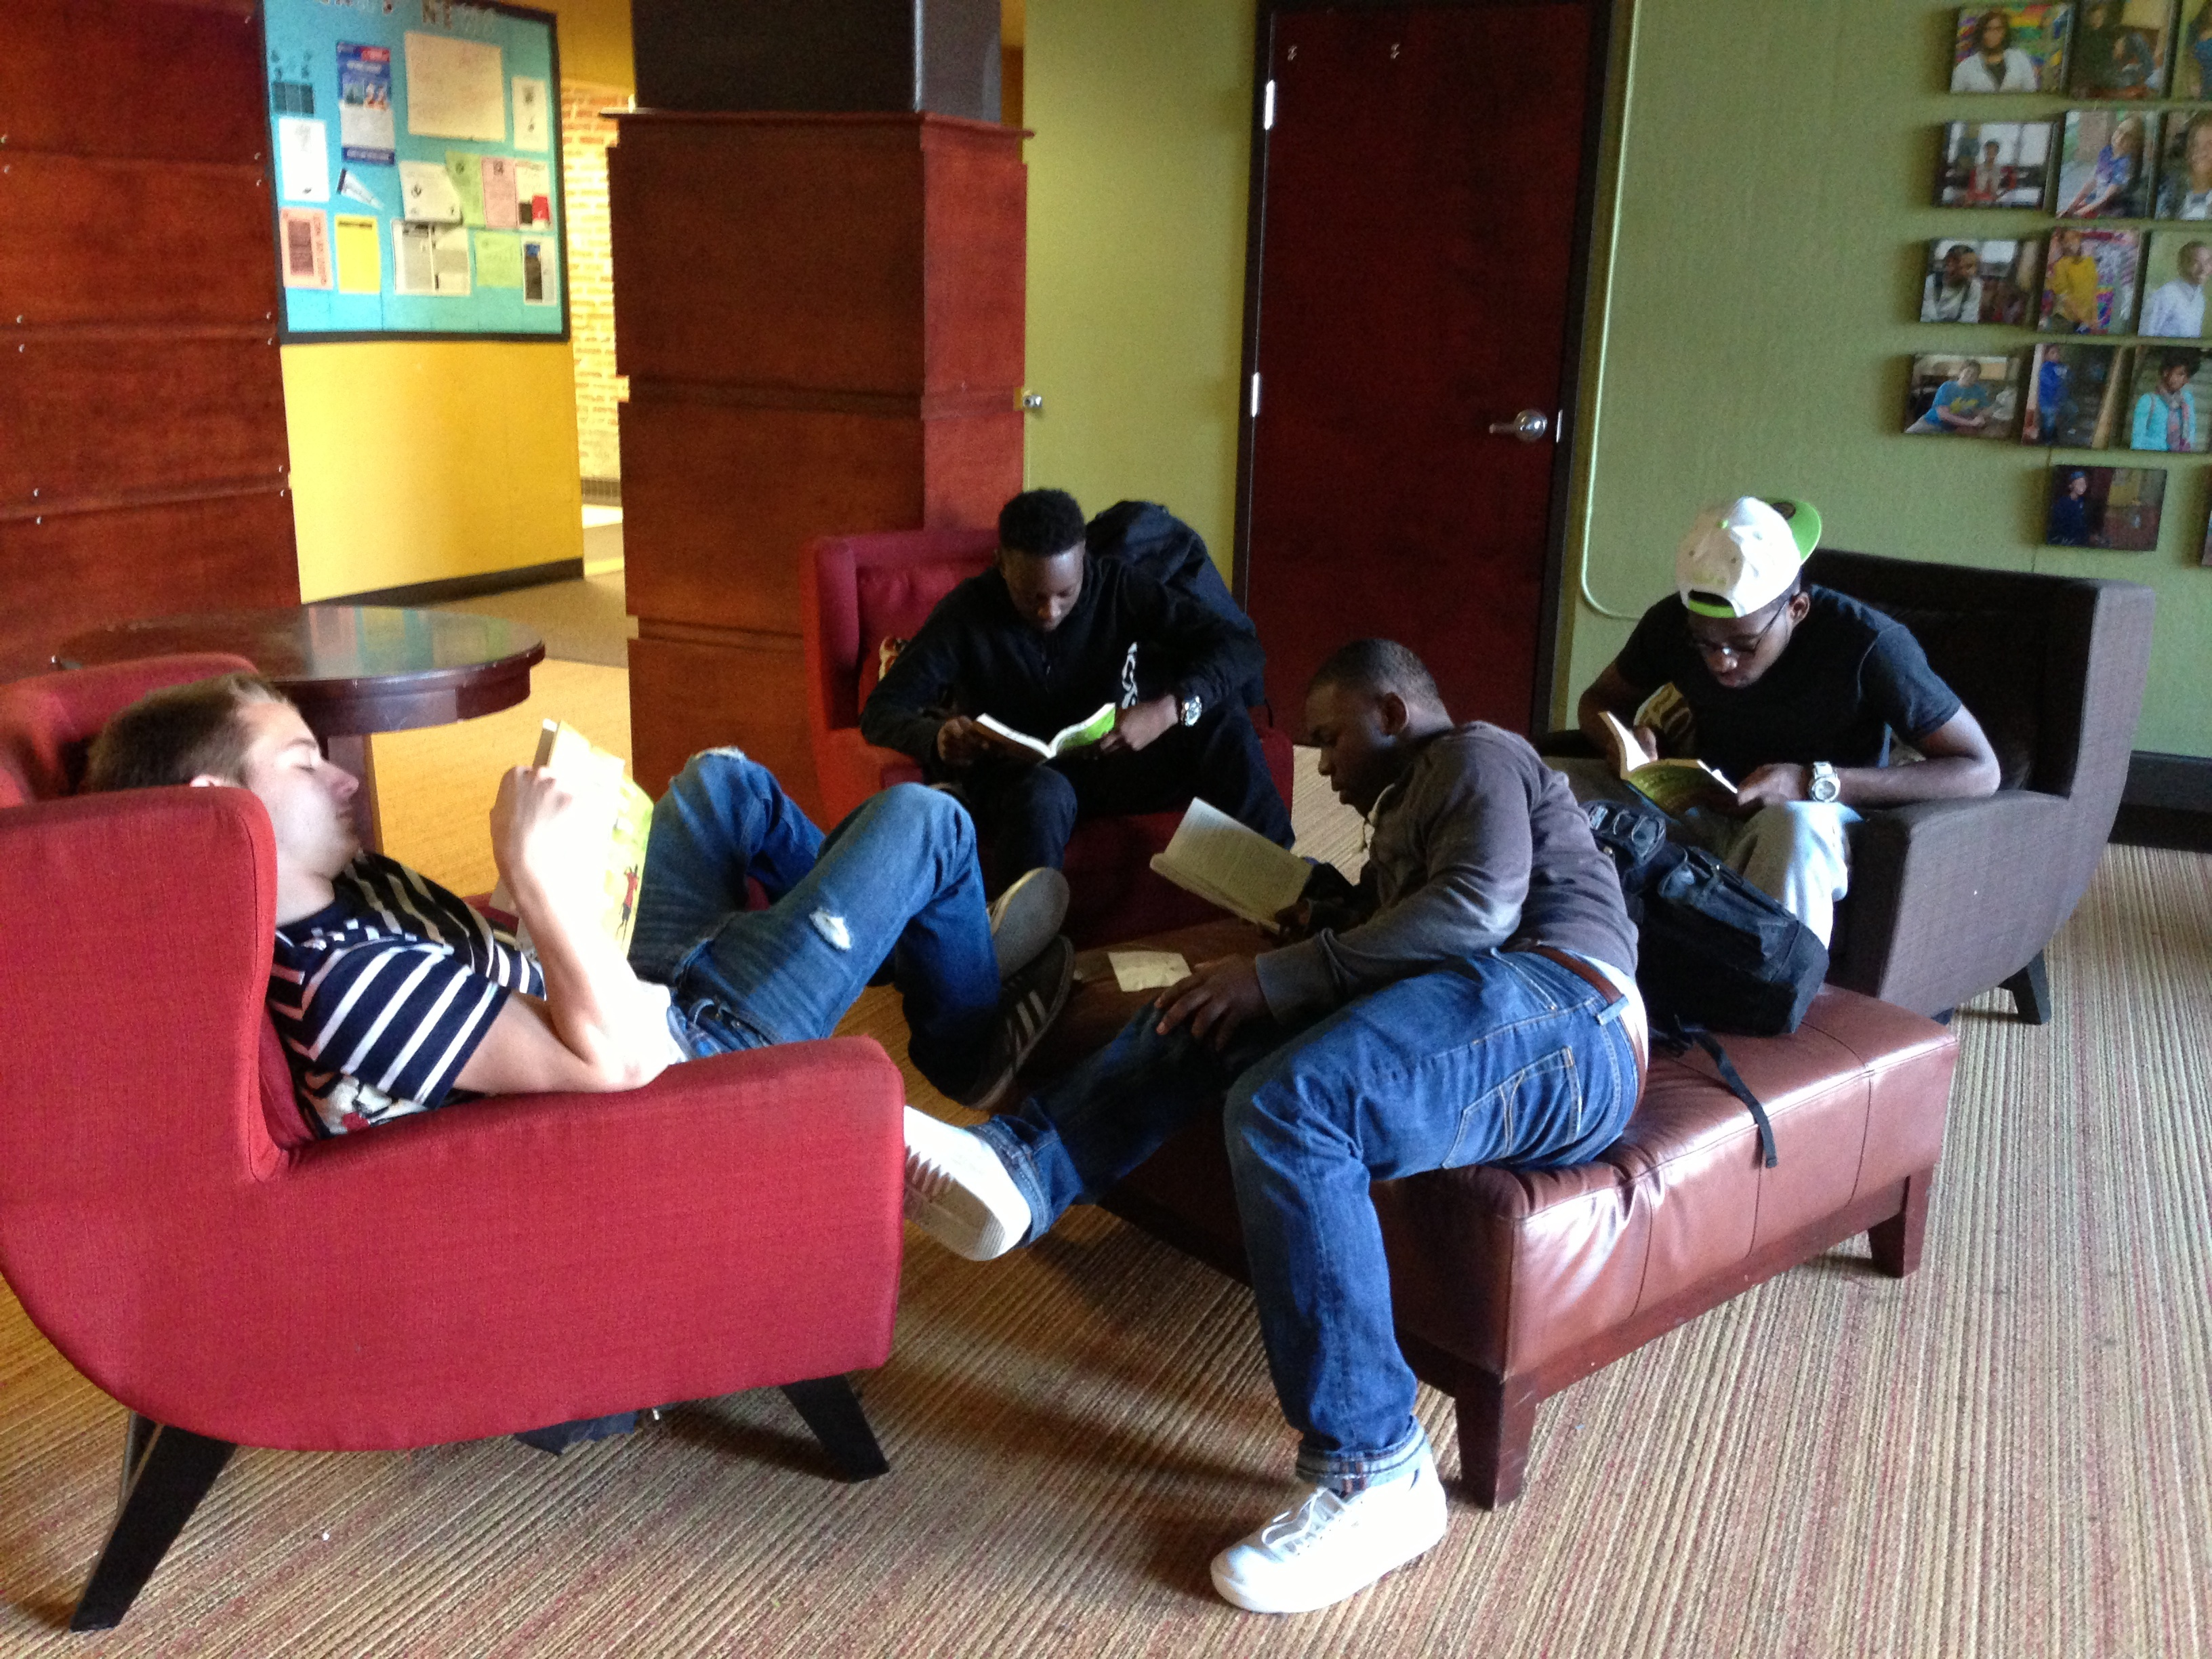 CNHS Lobby and Boys reading.jpg